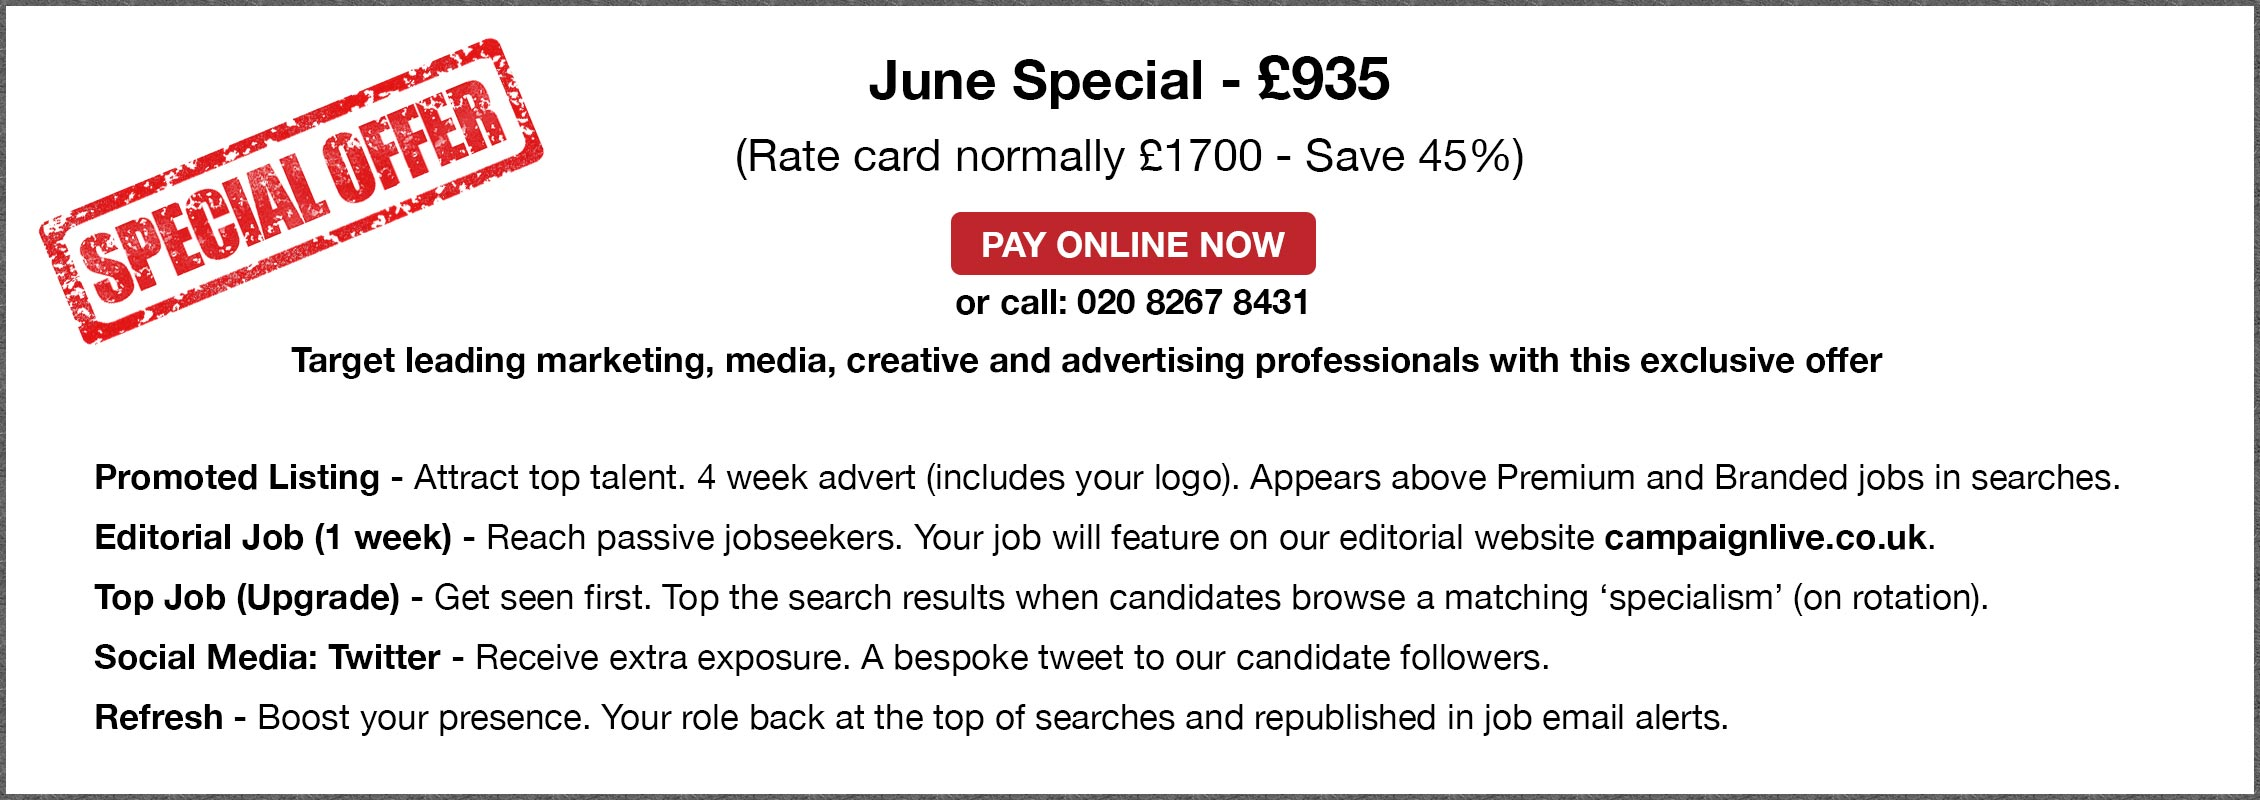 Special Offer. June Special - £935. (Rate card normally £1700 - Save 45%). PAY ONLINE NOW or call: 020 8267 8431. Target leading marketing, media, creative and advertising professionals with this exclusive offer.Promoted Listing - Attract top talent. 4 week advert (includes your logo). Appears above Premium and Branded jobs in searches. Editorial Job (1 week) - Reach passive jobseekers. Your job will feature on our editorial website campaignlive.co.uk. Top Job (Upgrade) - Get seen first. Top the search results when candidates browse a matching 'specialism' (on rotation). Social Media: Twitter - Receive extra exposure. A bespoke tweet to our candidate followers. Refresh - Boost your presence. Your role back at the top of searches and republished in job email alerts.